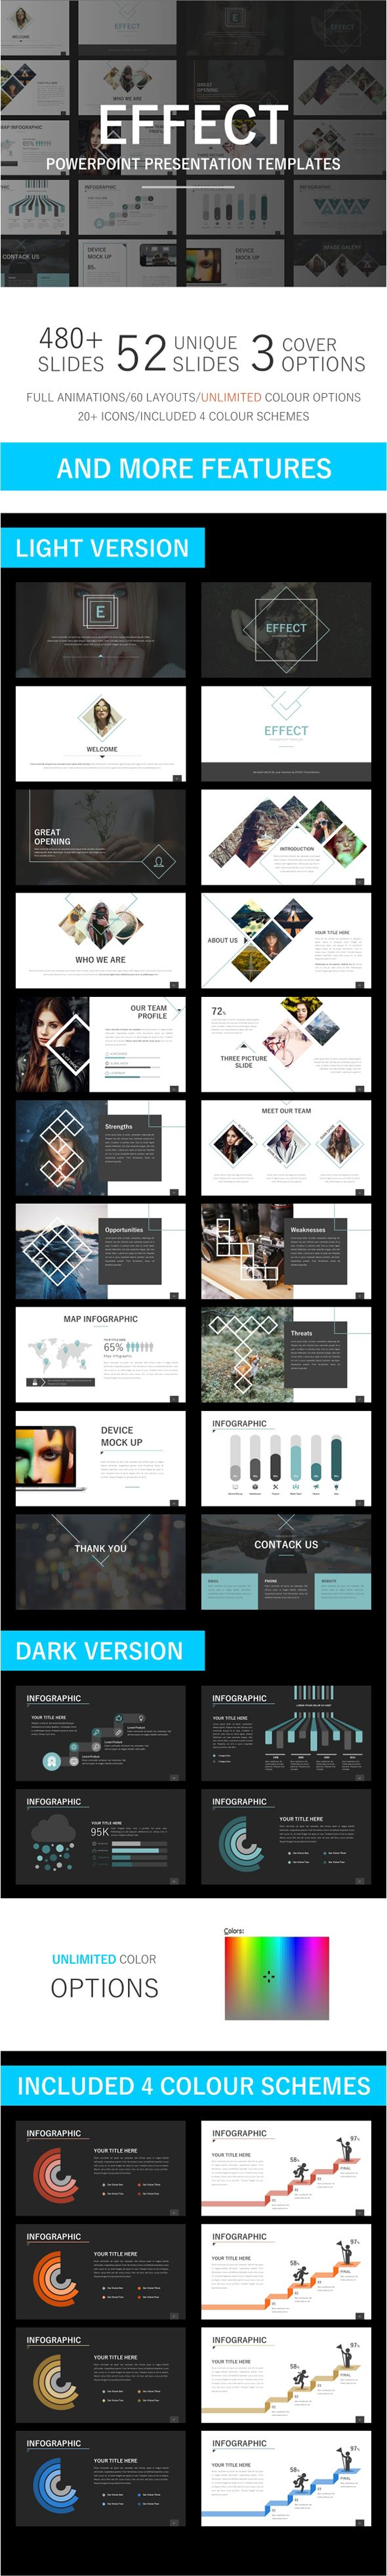 Effect - Powerpoint Template 52 Unique Slides